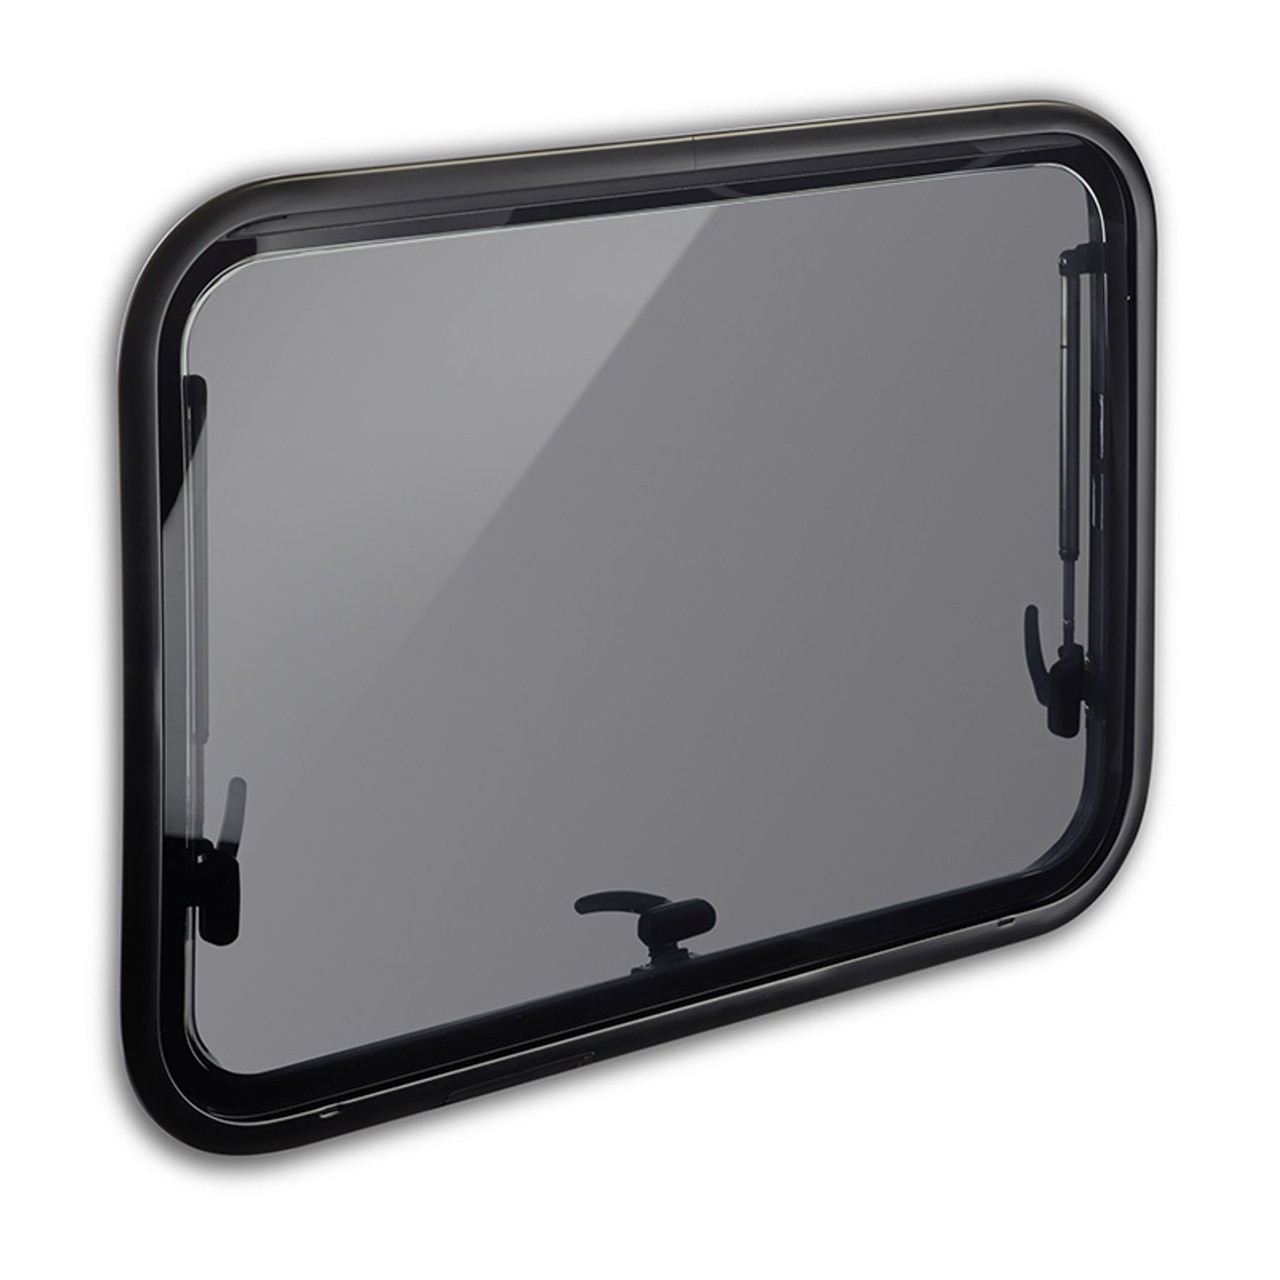 The Dometic S7P hinged window is perfect for your motorhome campervan or caravan